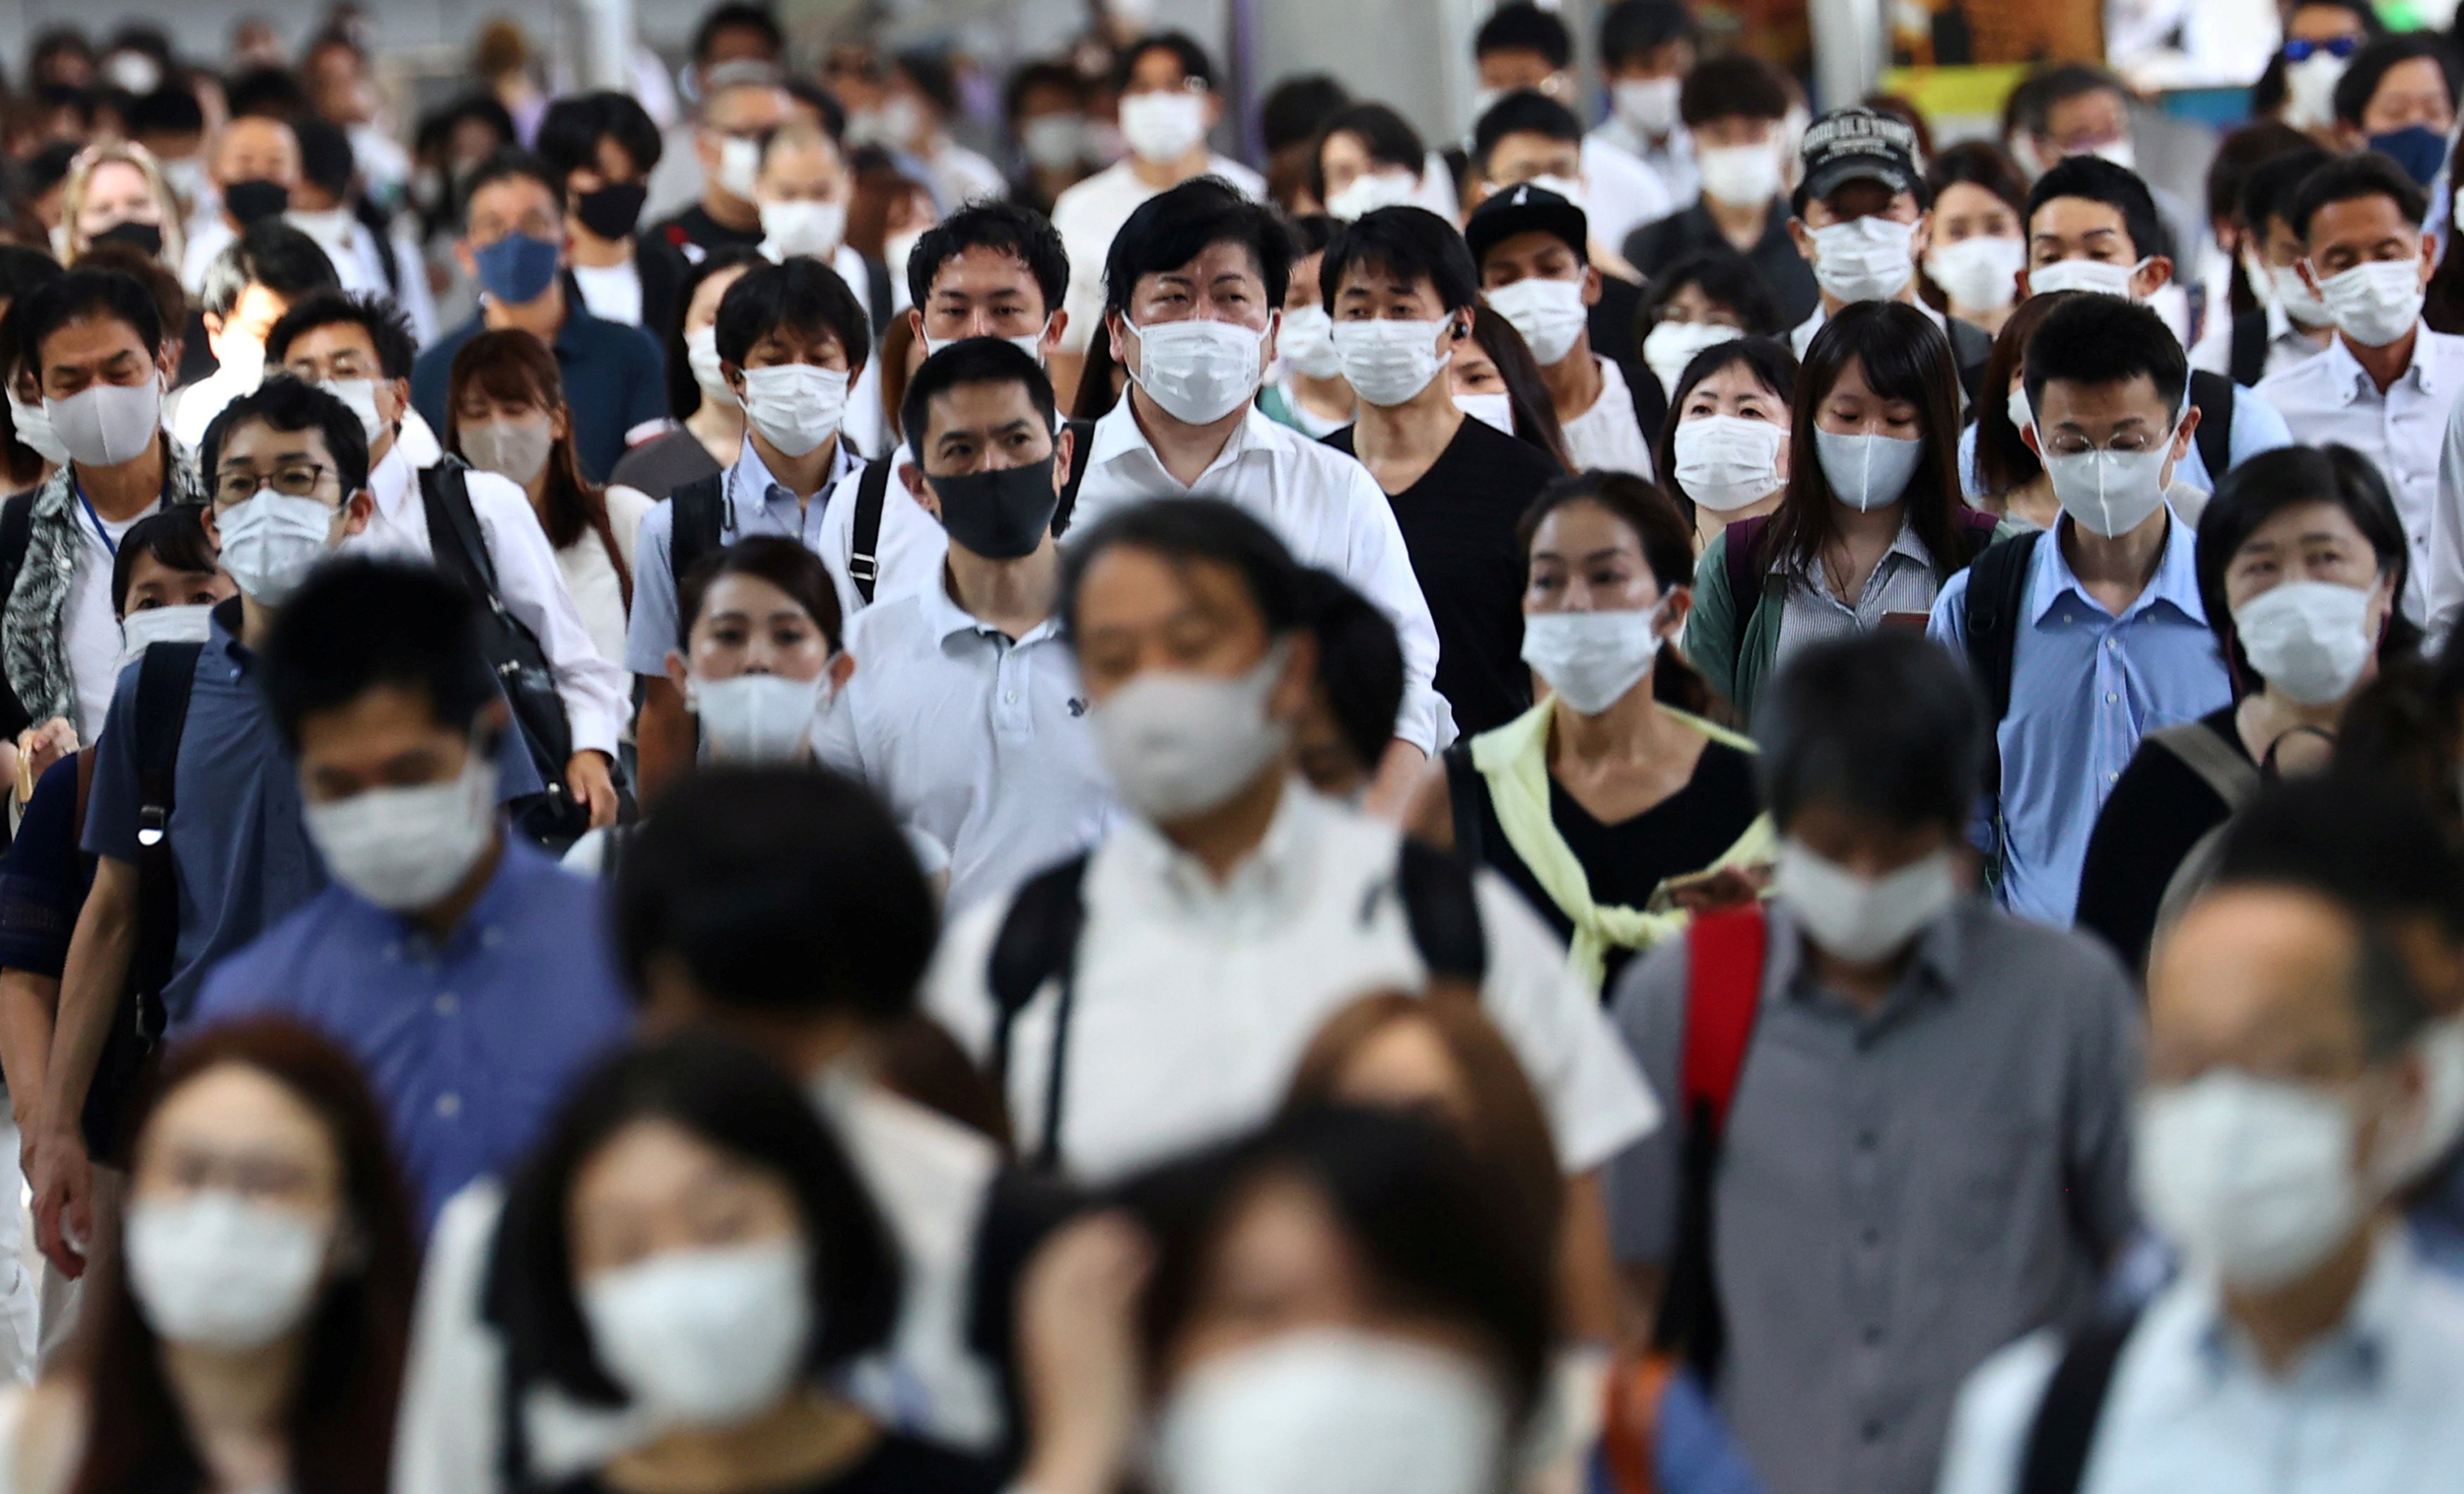 Tokyo's daily Covid cases hit record high during Olympics